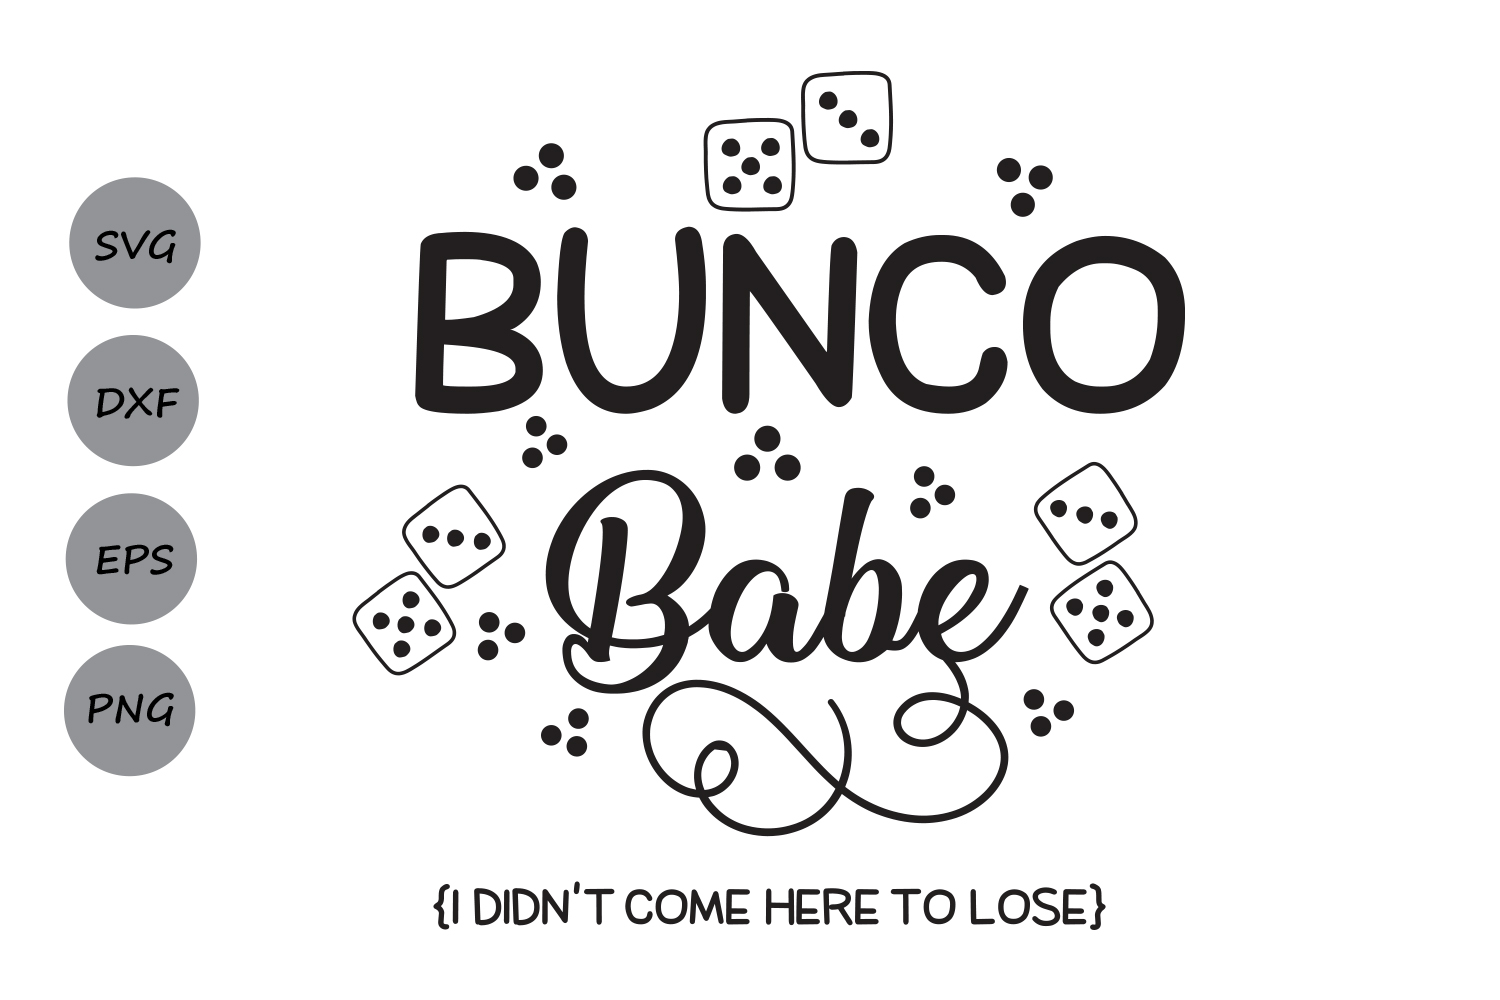 Free Babes Games bunco babe svg, bunco svg, dice svg, bunco game svg, bunco dice, silhouette  cut files, cricut files, svg, dxf, eps, png.